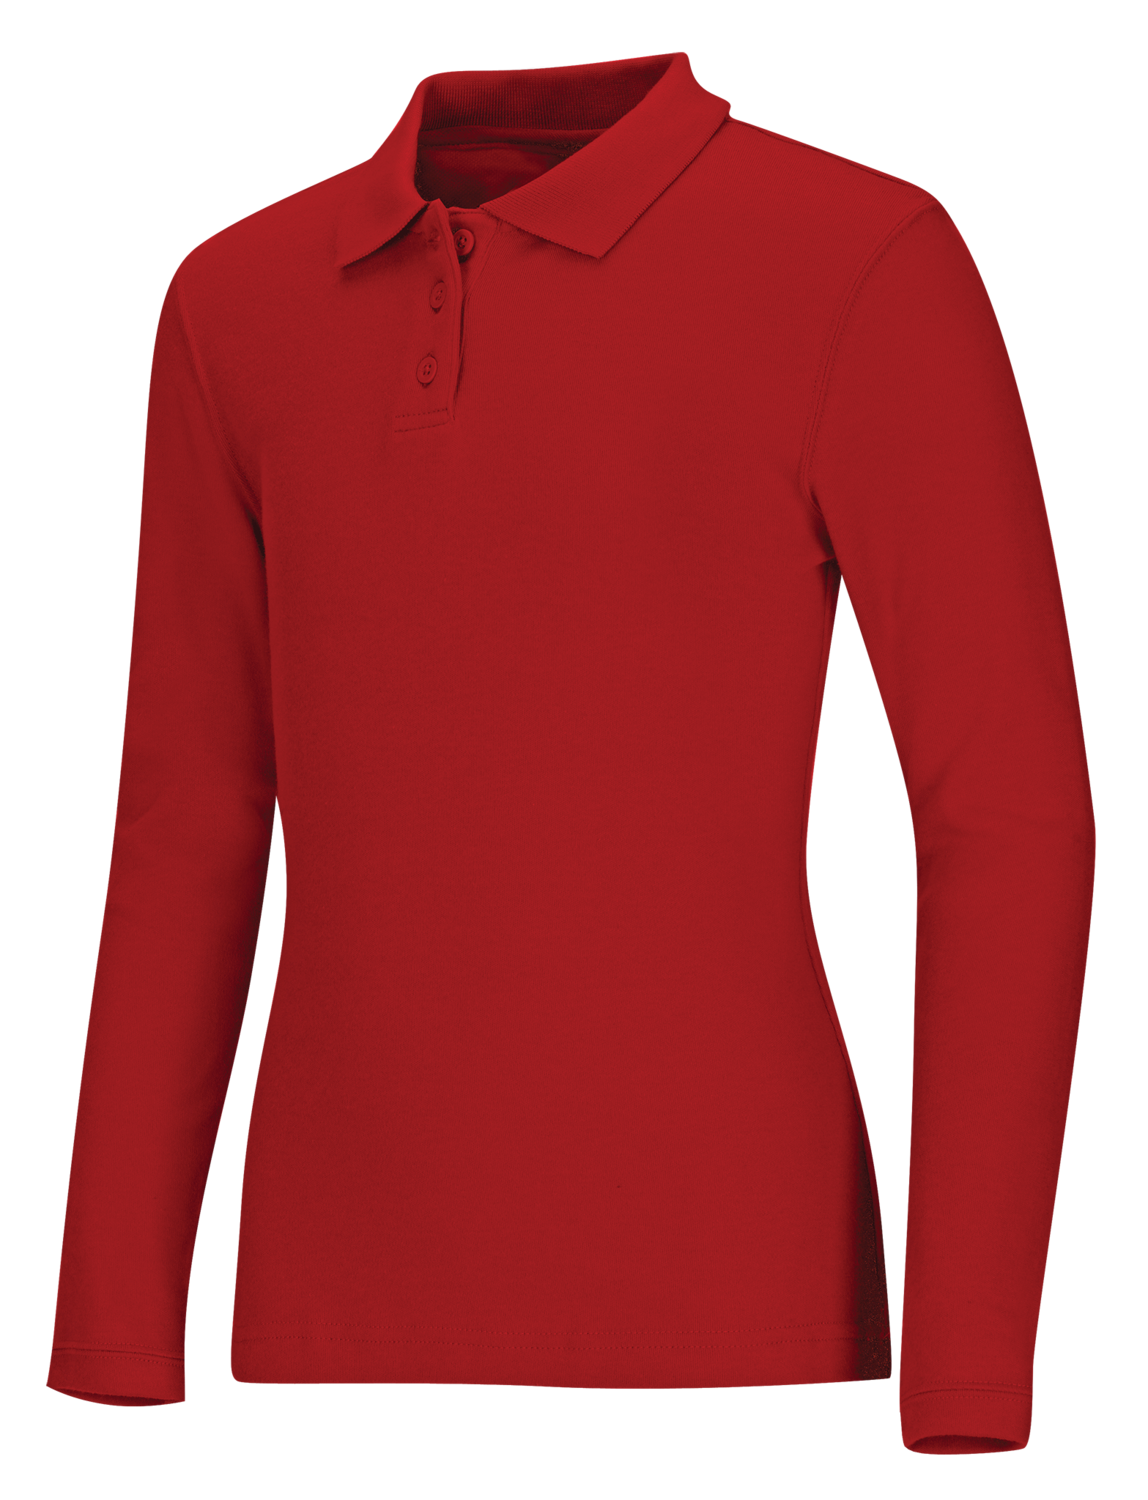 Polo Code Happy 58544 Unisex Colore Red